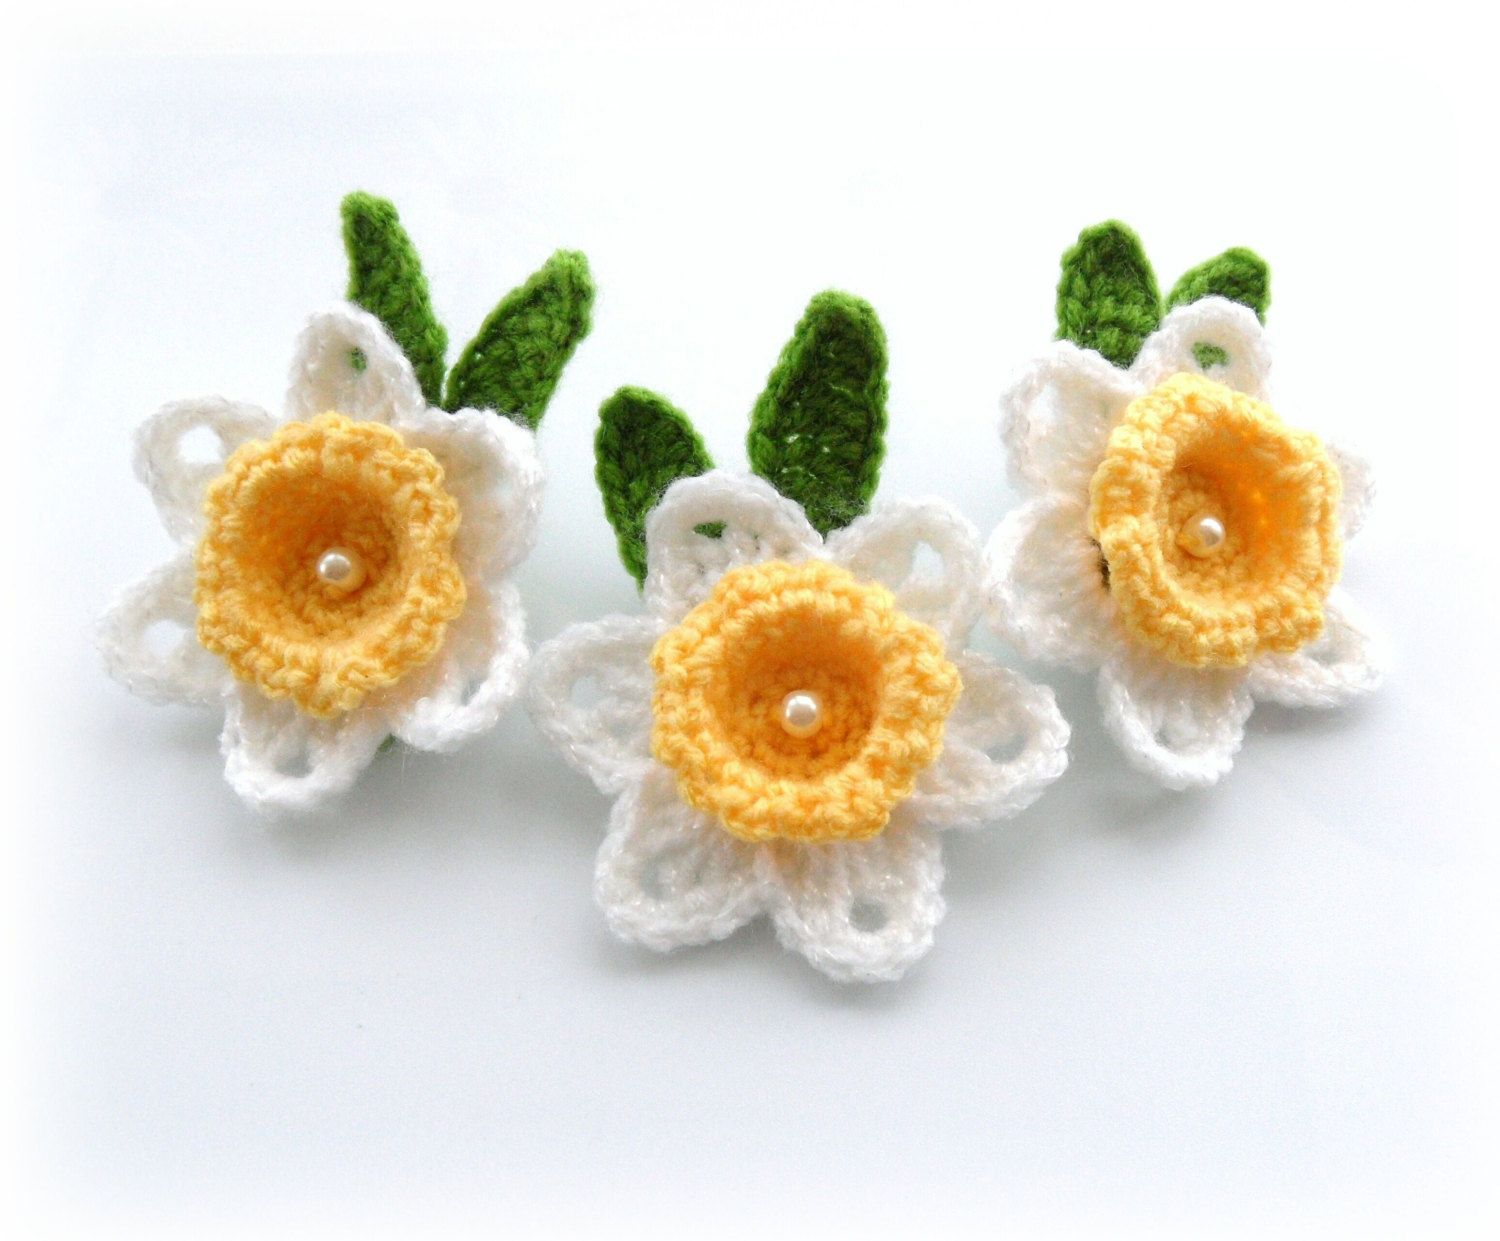 Crochet applique daffodil flowers crochet daffodil brooches crochet applique daffodil flowers crochet daffodil brooches set of 3 made to order bankloansurffo Image collections